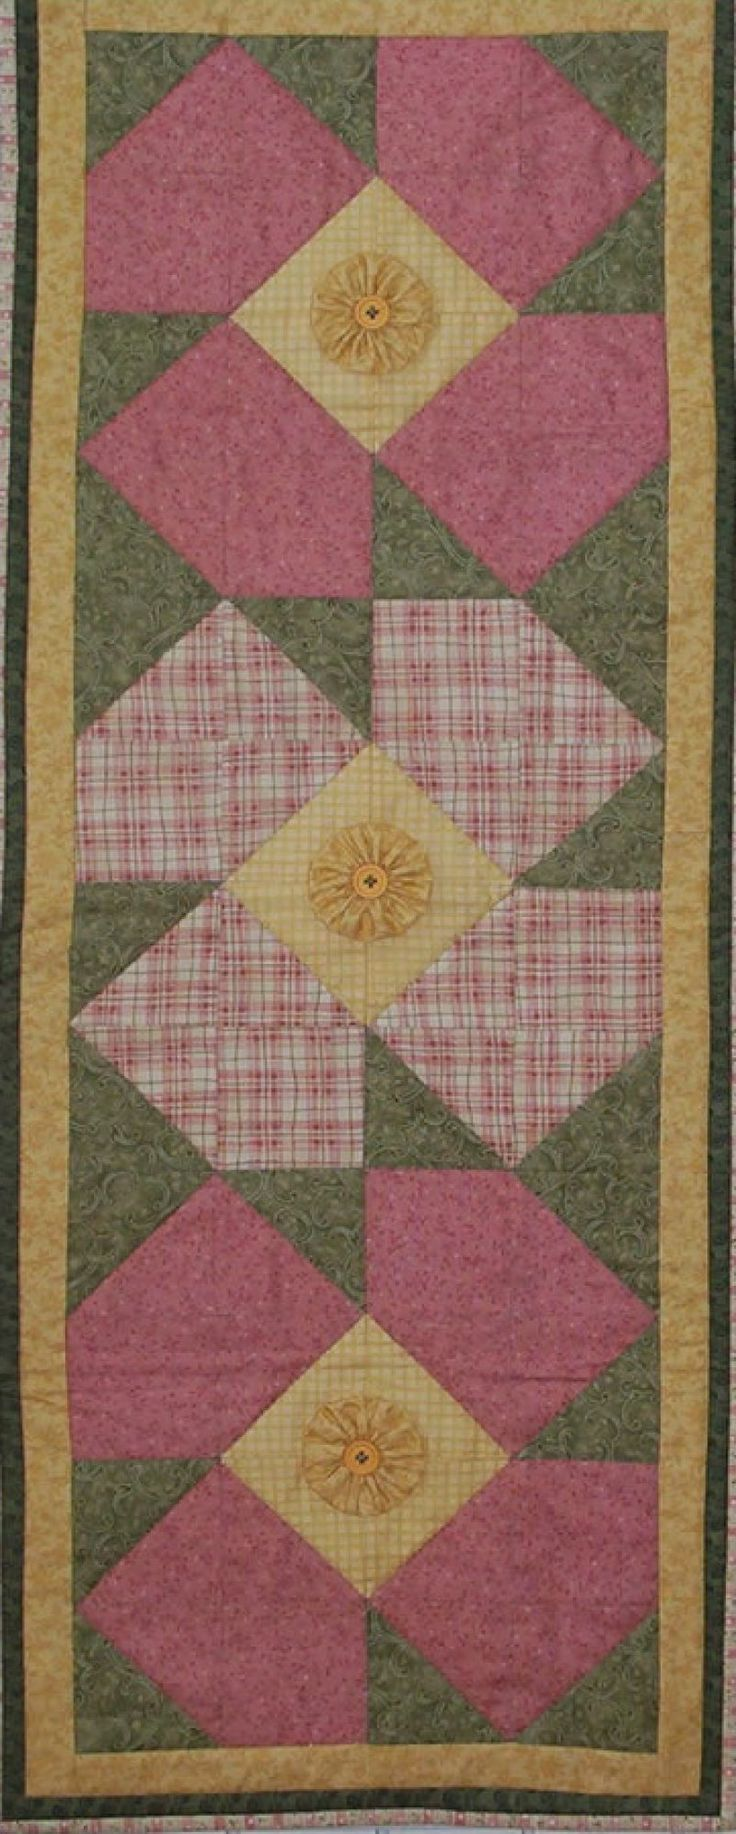 Pinterest Quilting Table Runners : Lazy Daisy Table Runner Pattern Quilts For All Pinterest Runners, Summer and Flower